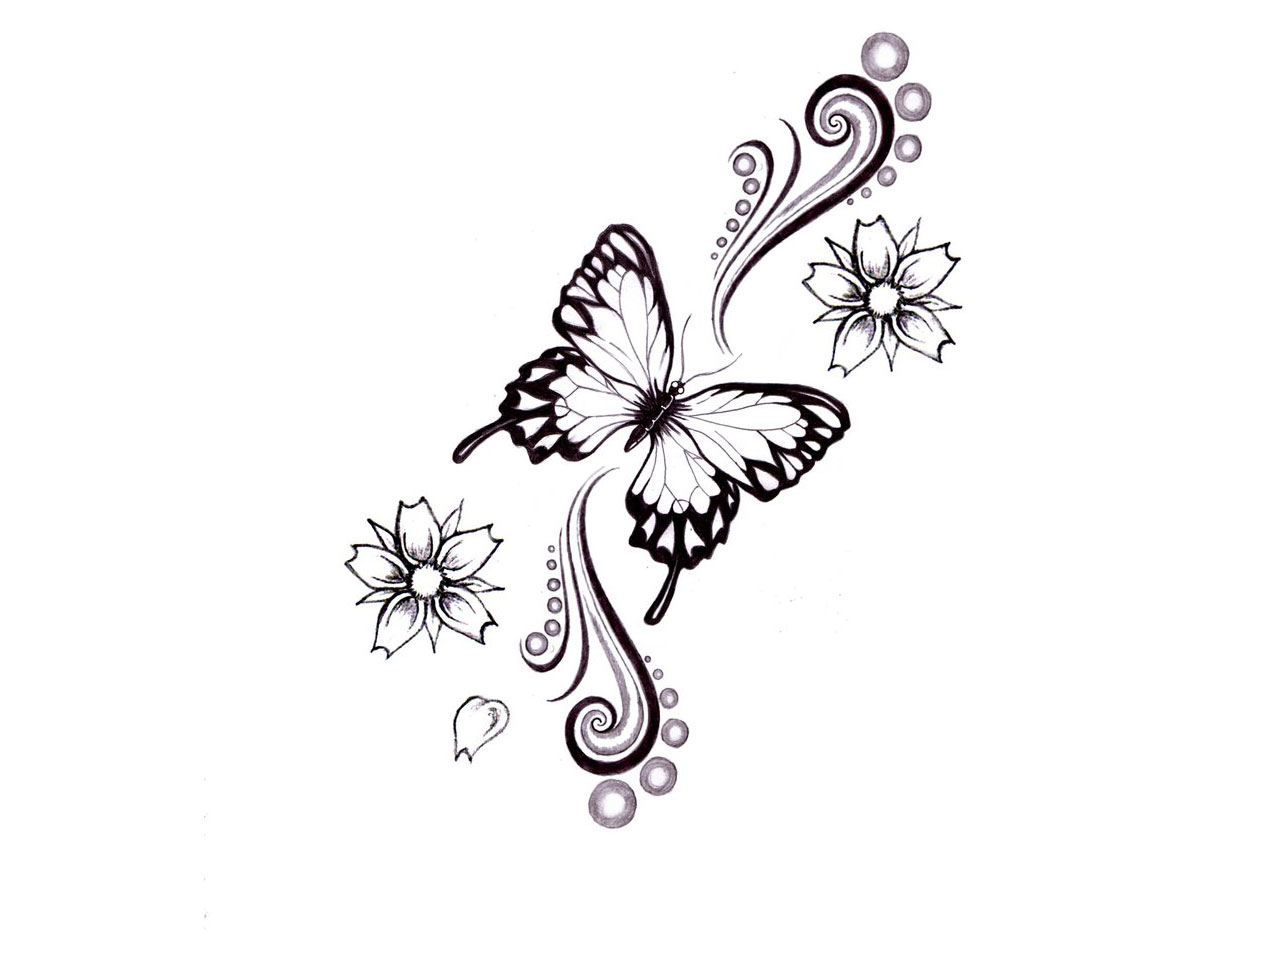 Butterfly tattoo sketches tukang kritik - Tatouage de papillon ...